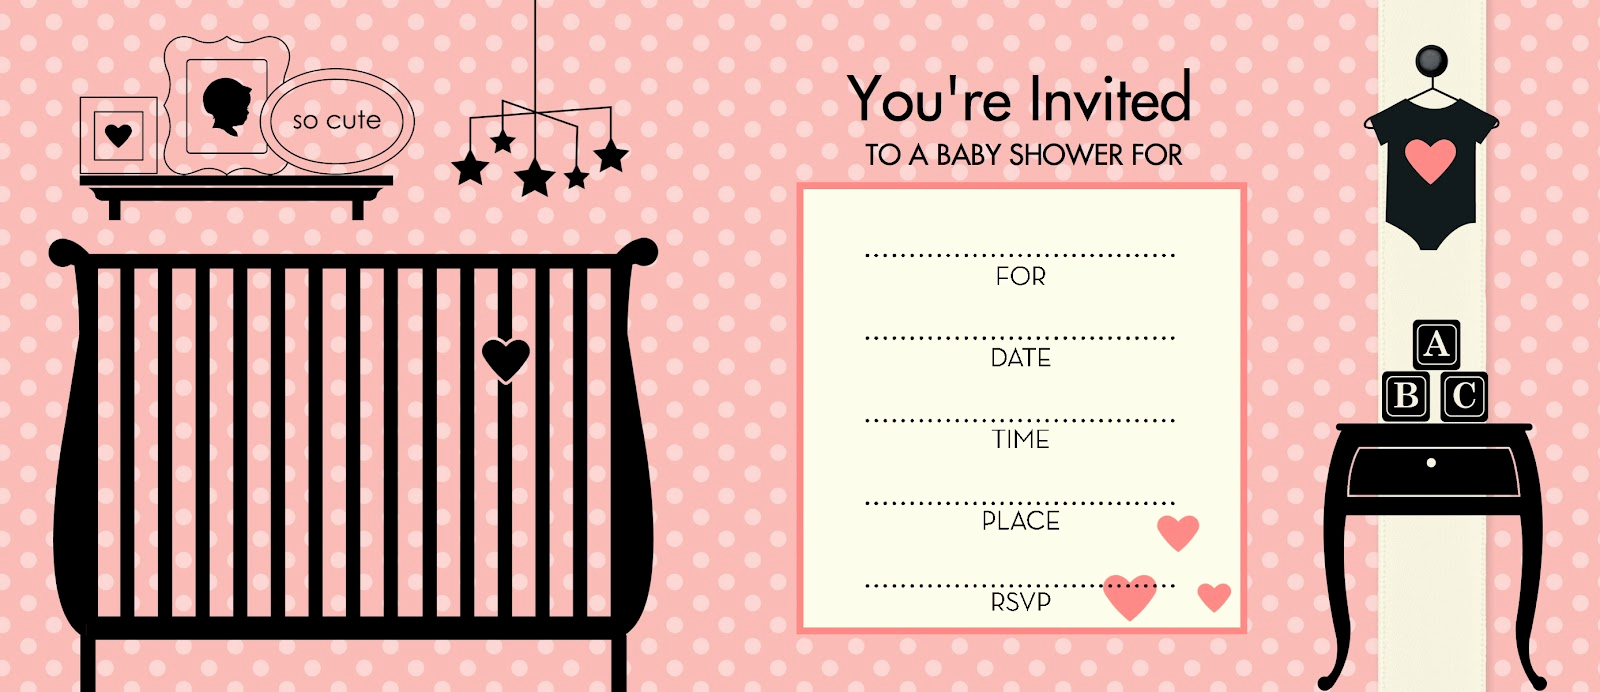 Blank Baby Shower Invitation Template New Blank Baby Shower Invitations